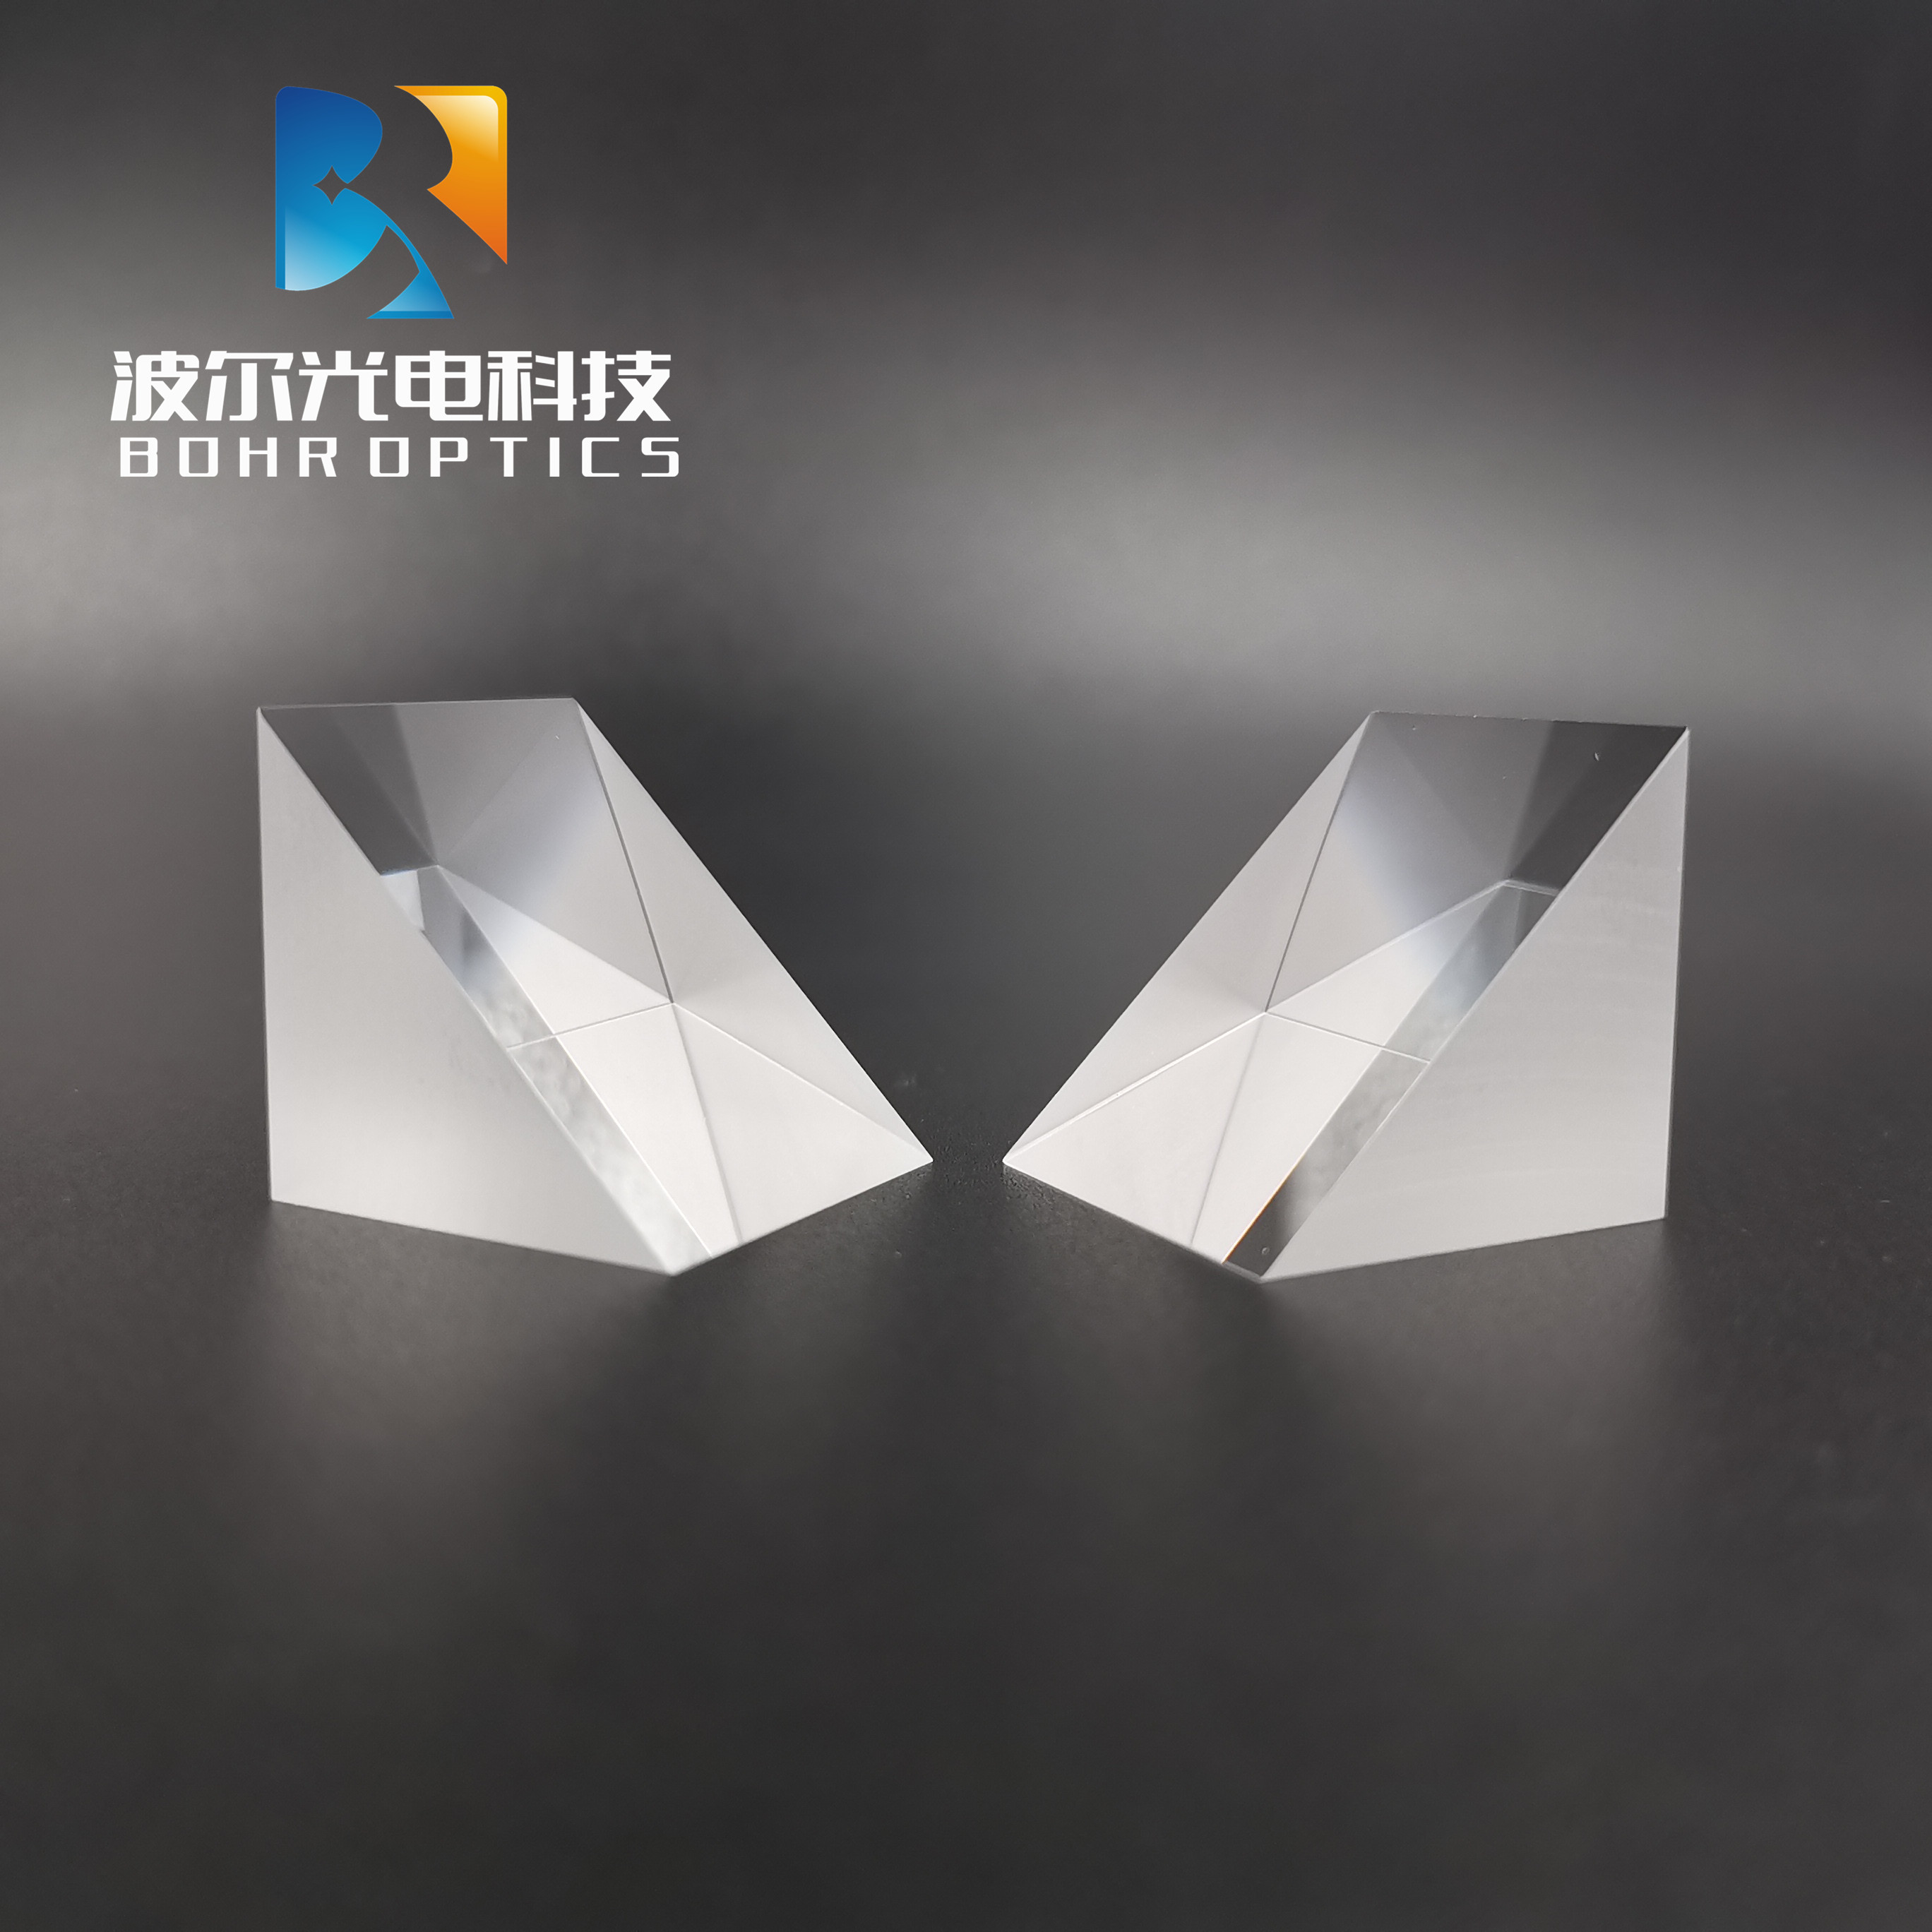 10x10x10mm Right Angle Prism No Coating N-BK7 (K9) Optical Components Glass for Precision Optical Instruments